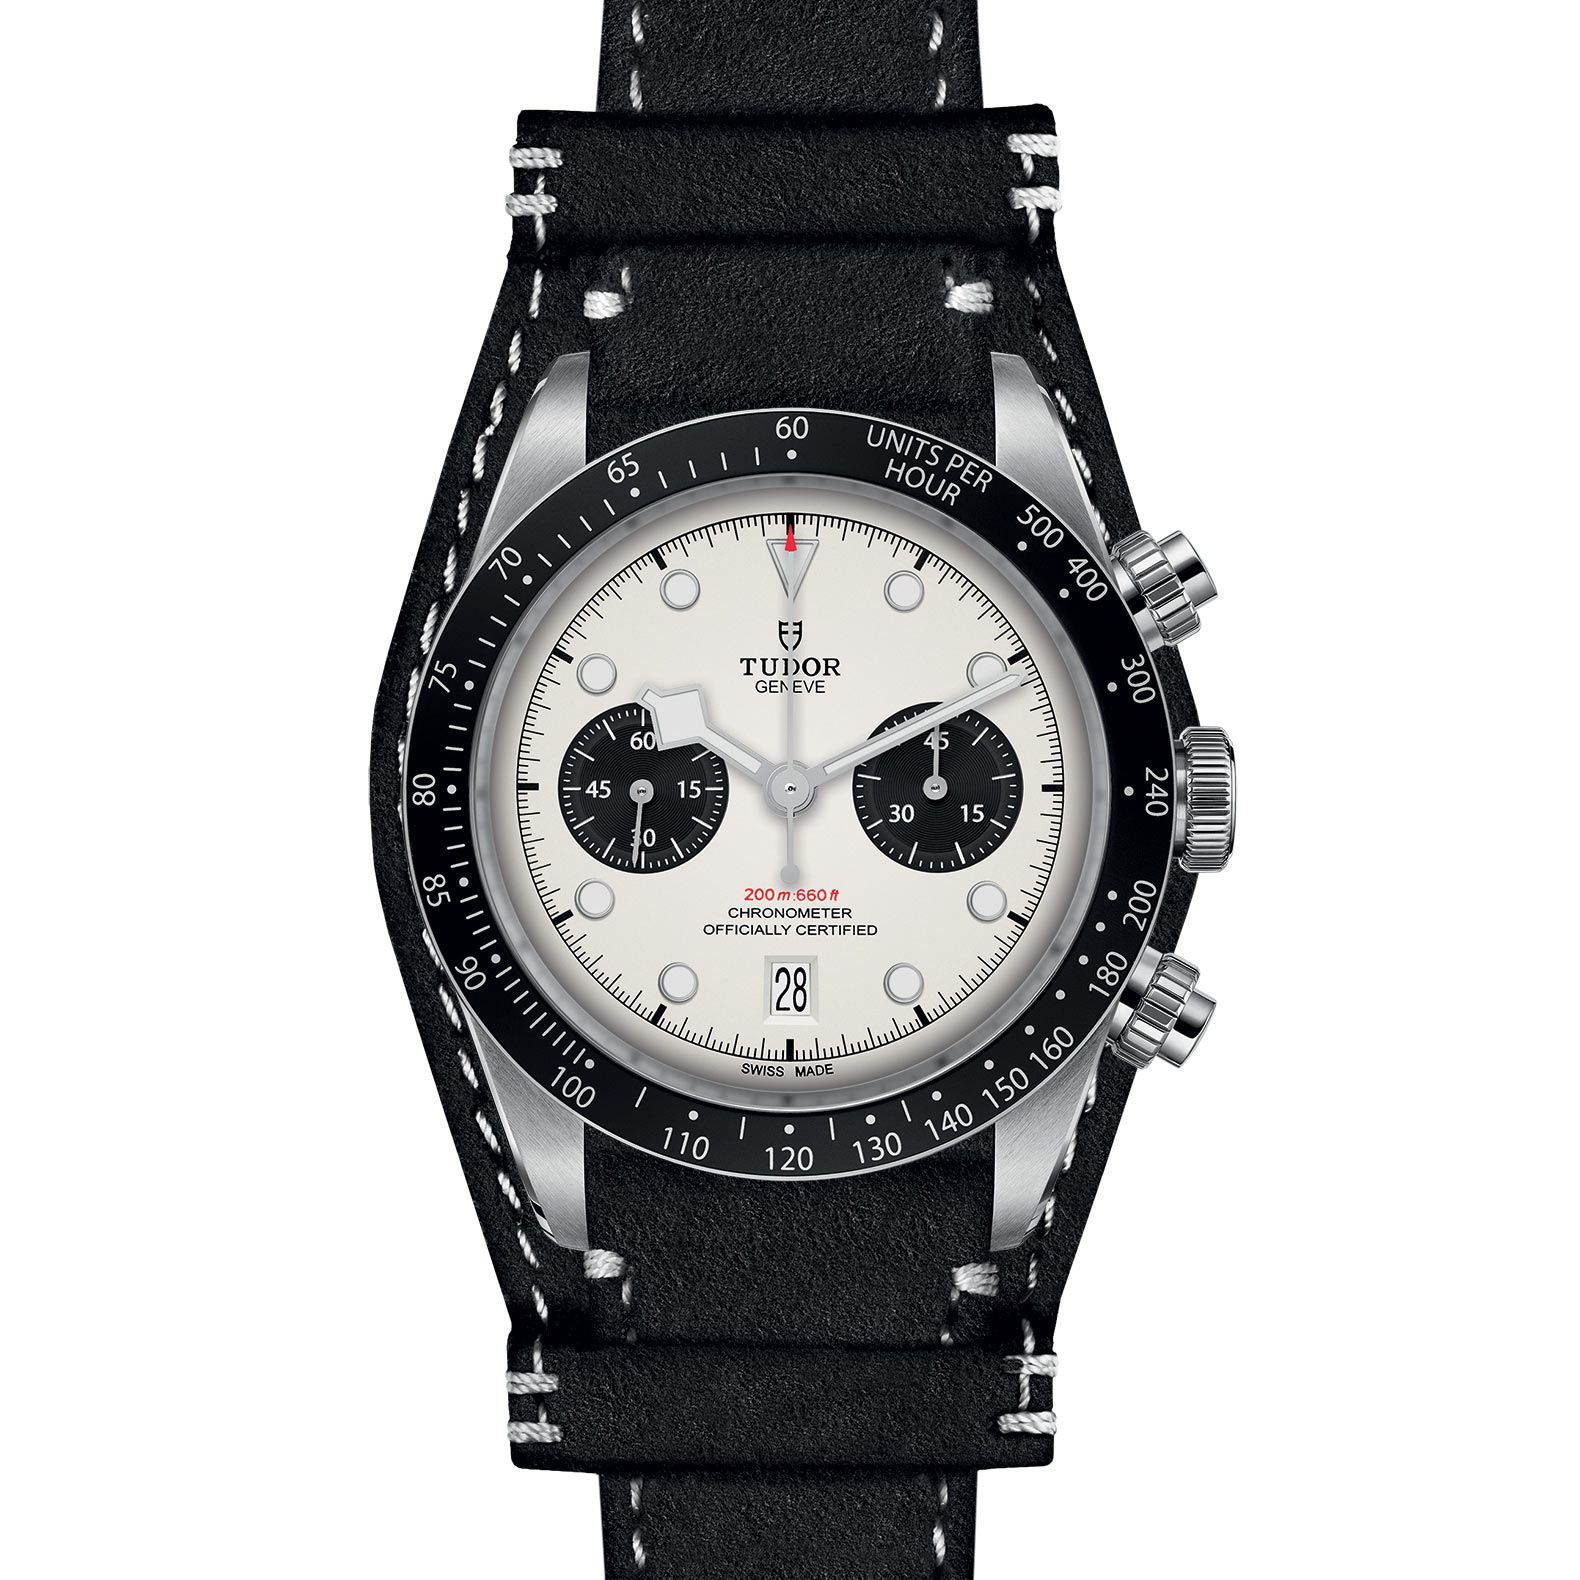 BLACK BAY CHRONO 79360N - 0006